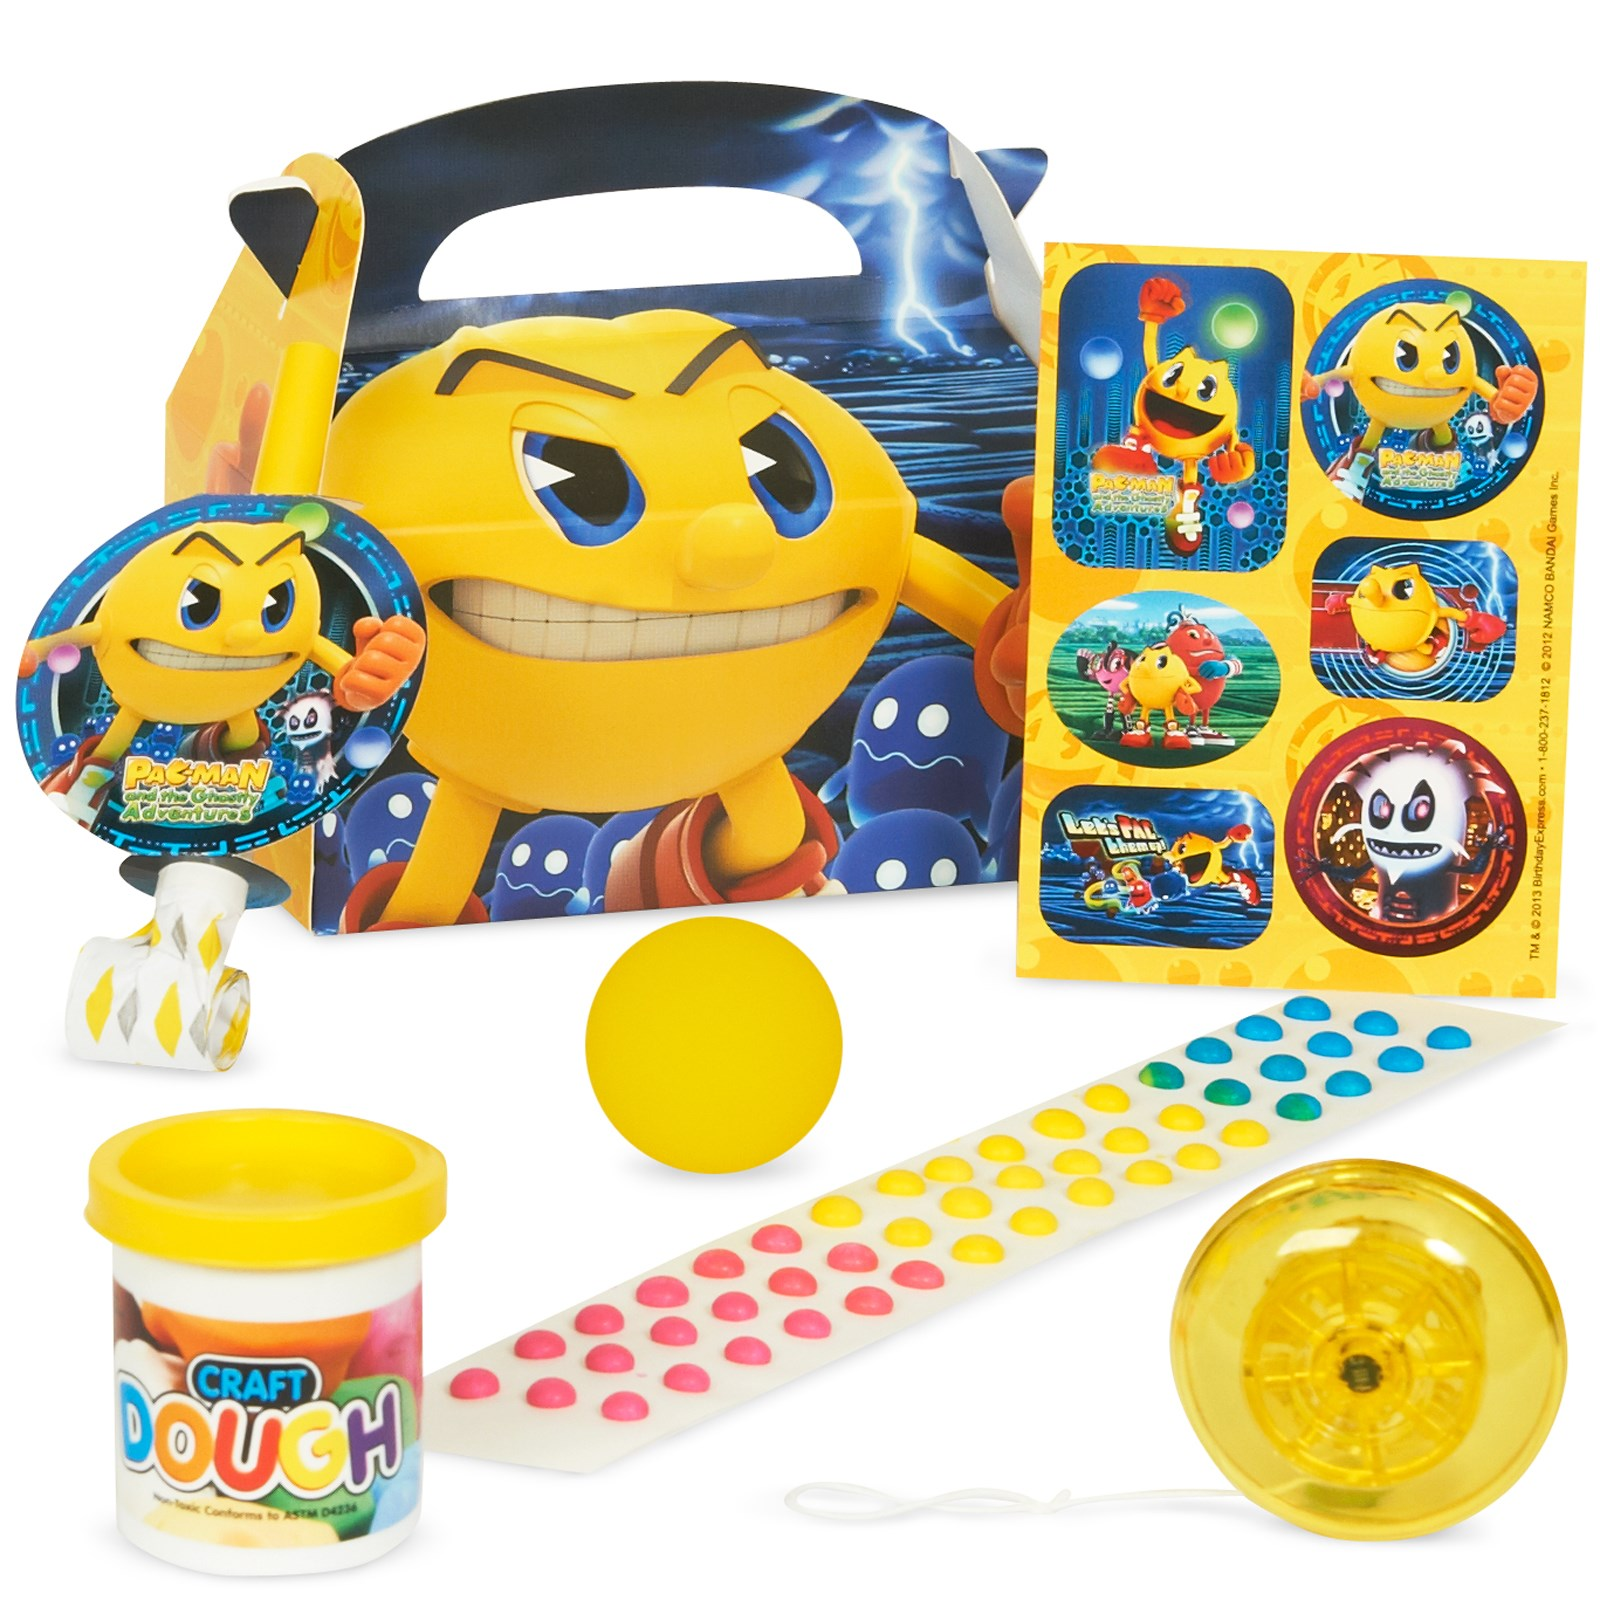 PAC-MAN and the Ghostly Adventures Filled Party Favor Box